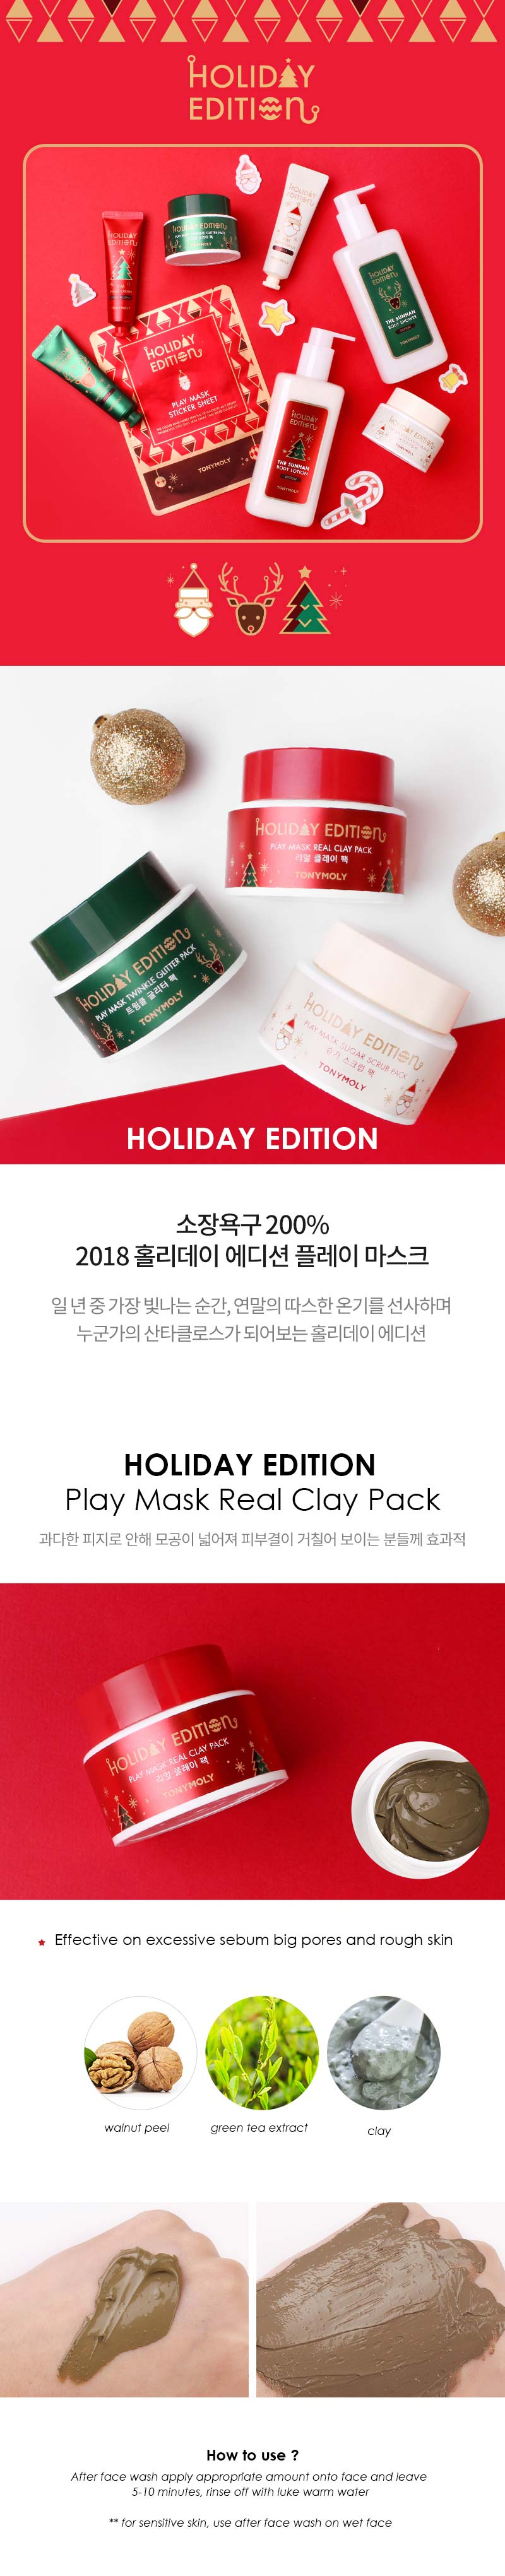 [Tony Moly] Holiday Edition Play Mask (Real Clay Pack)